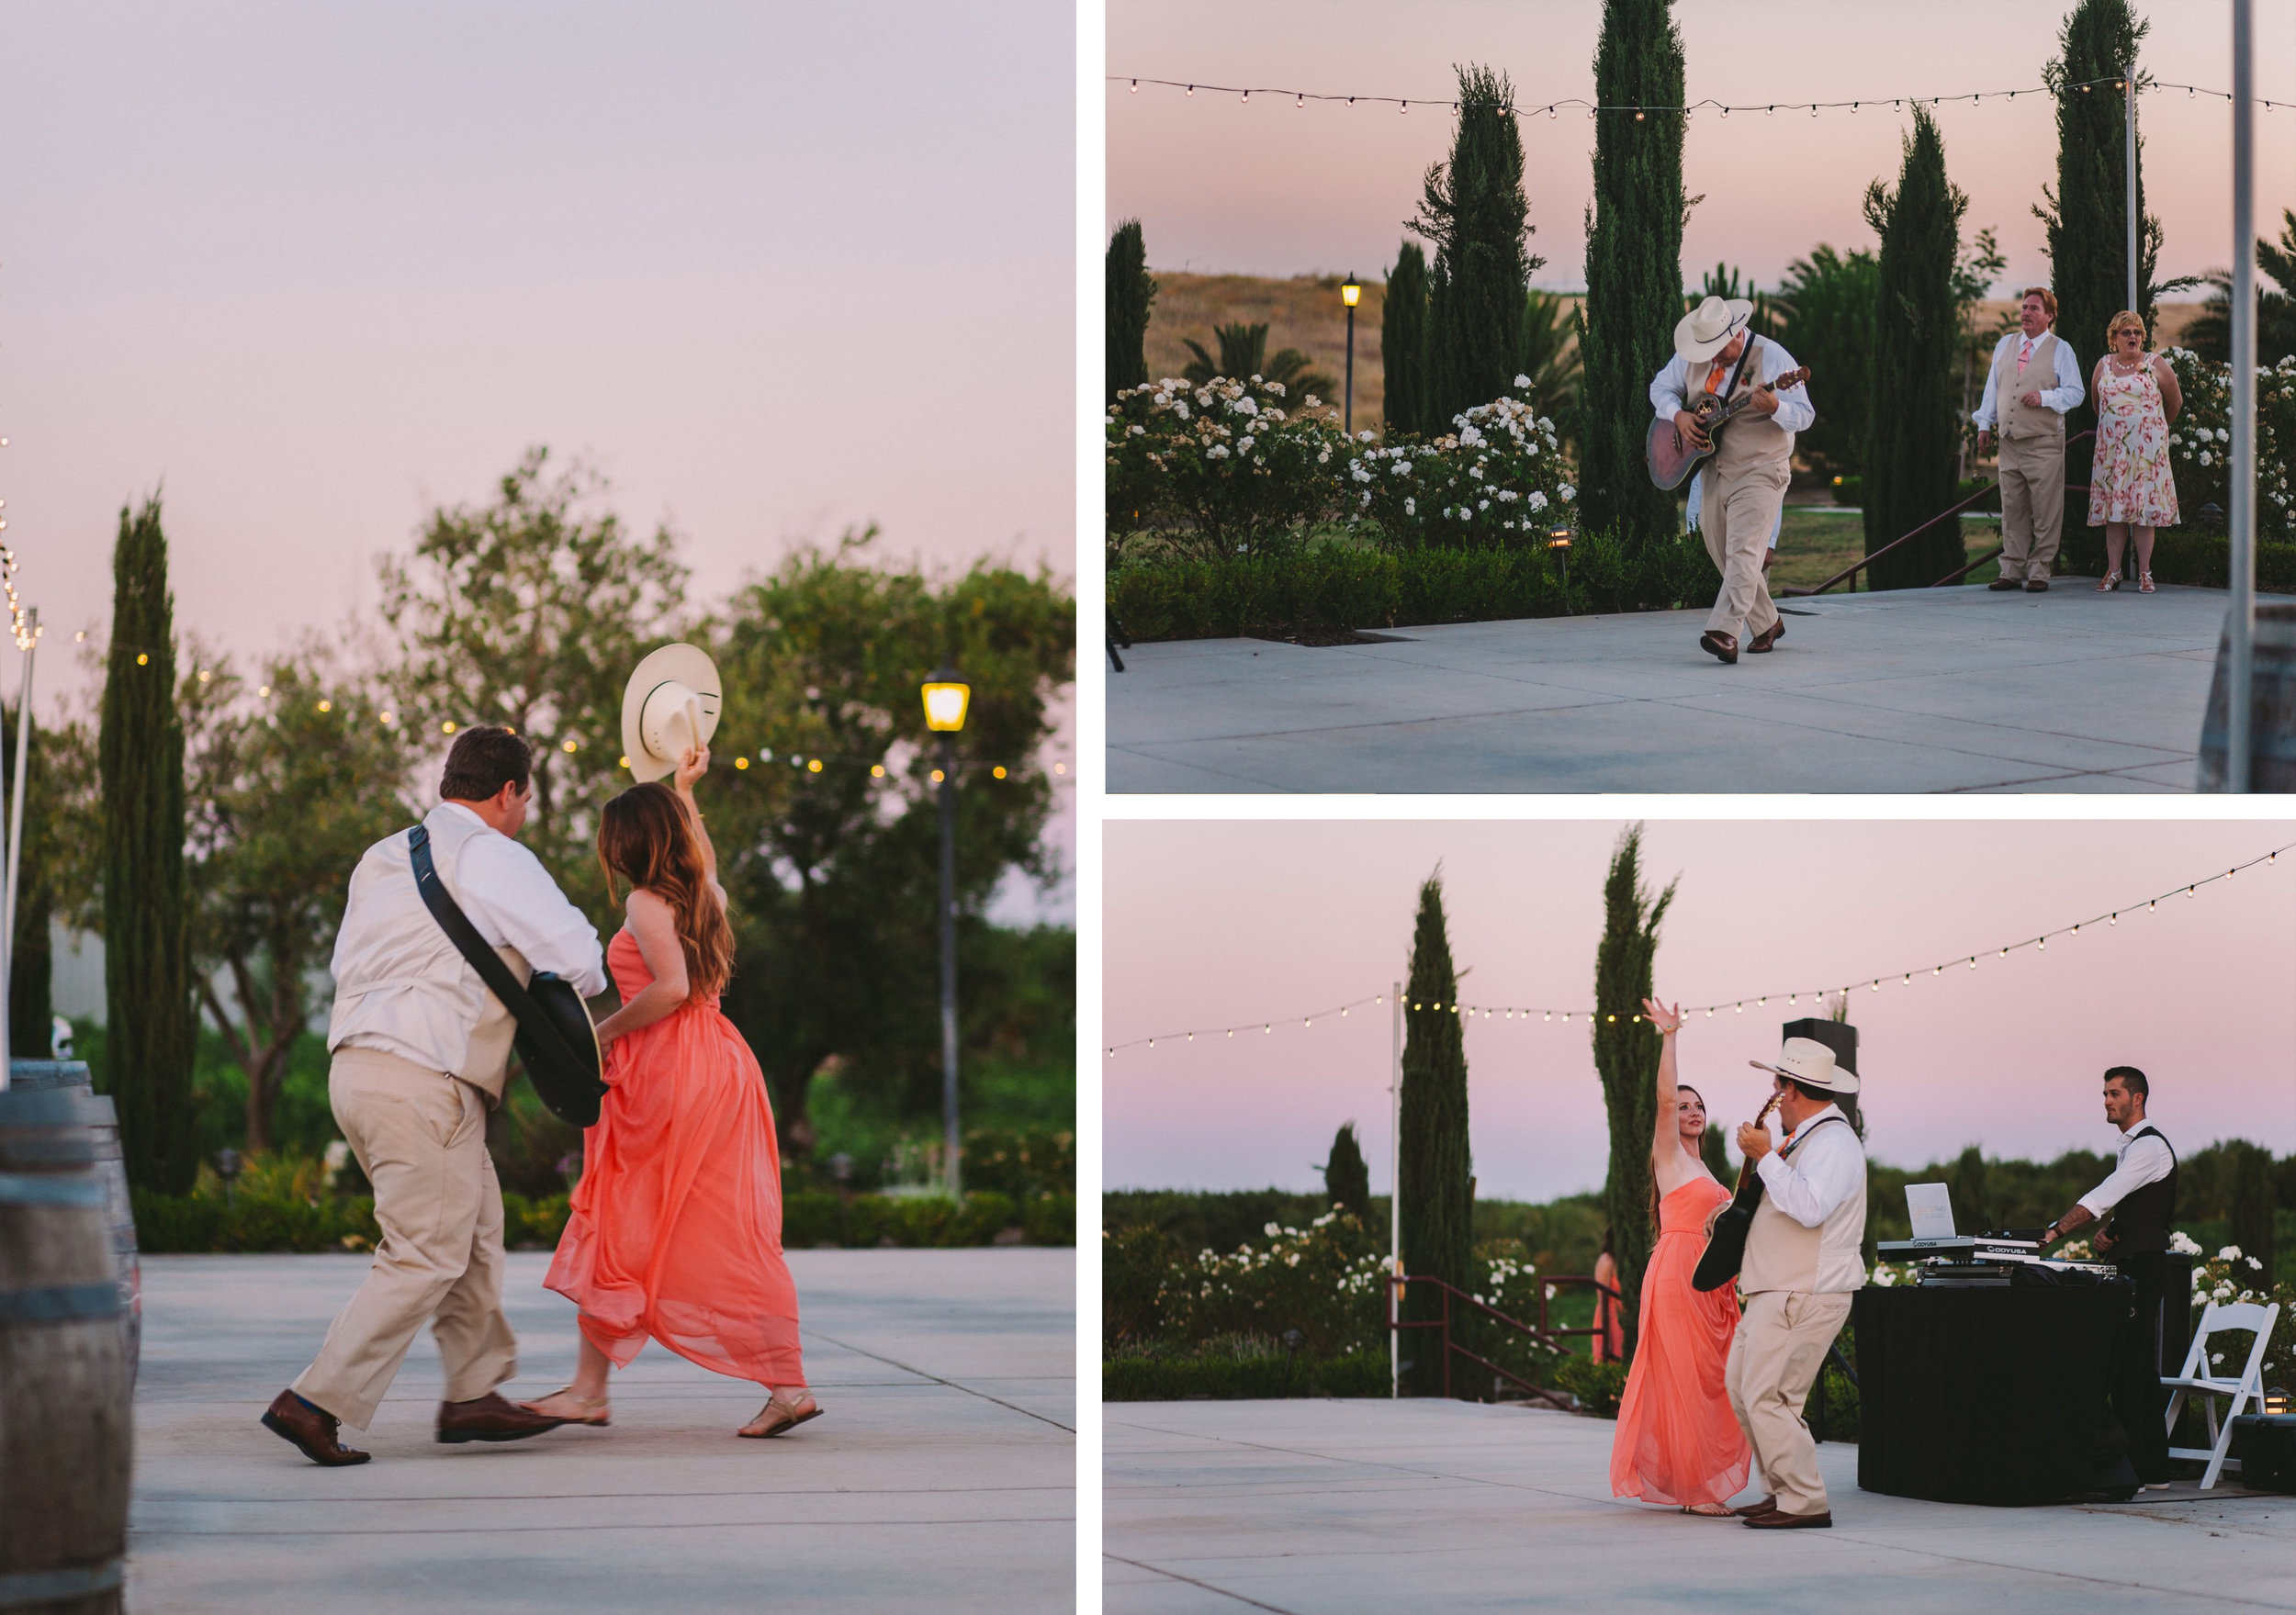 Bridal Party Dancing Entrance at Wedding Reception - Toca Madera Winery Wedding